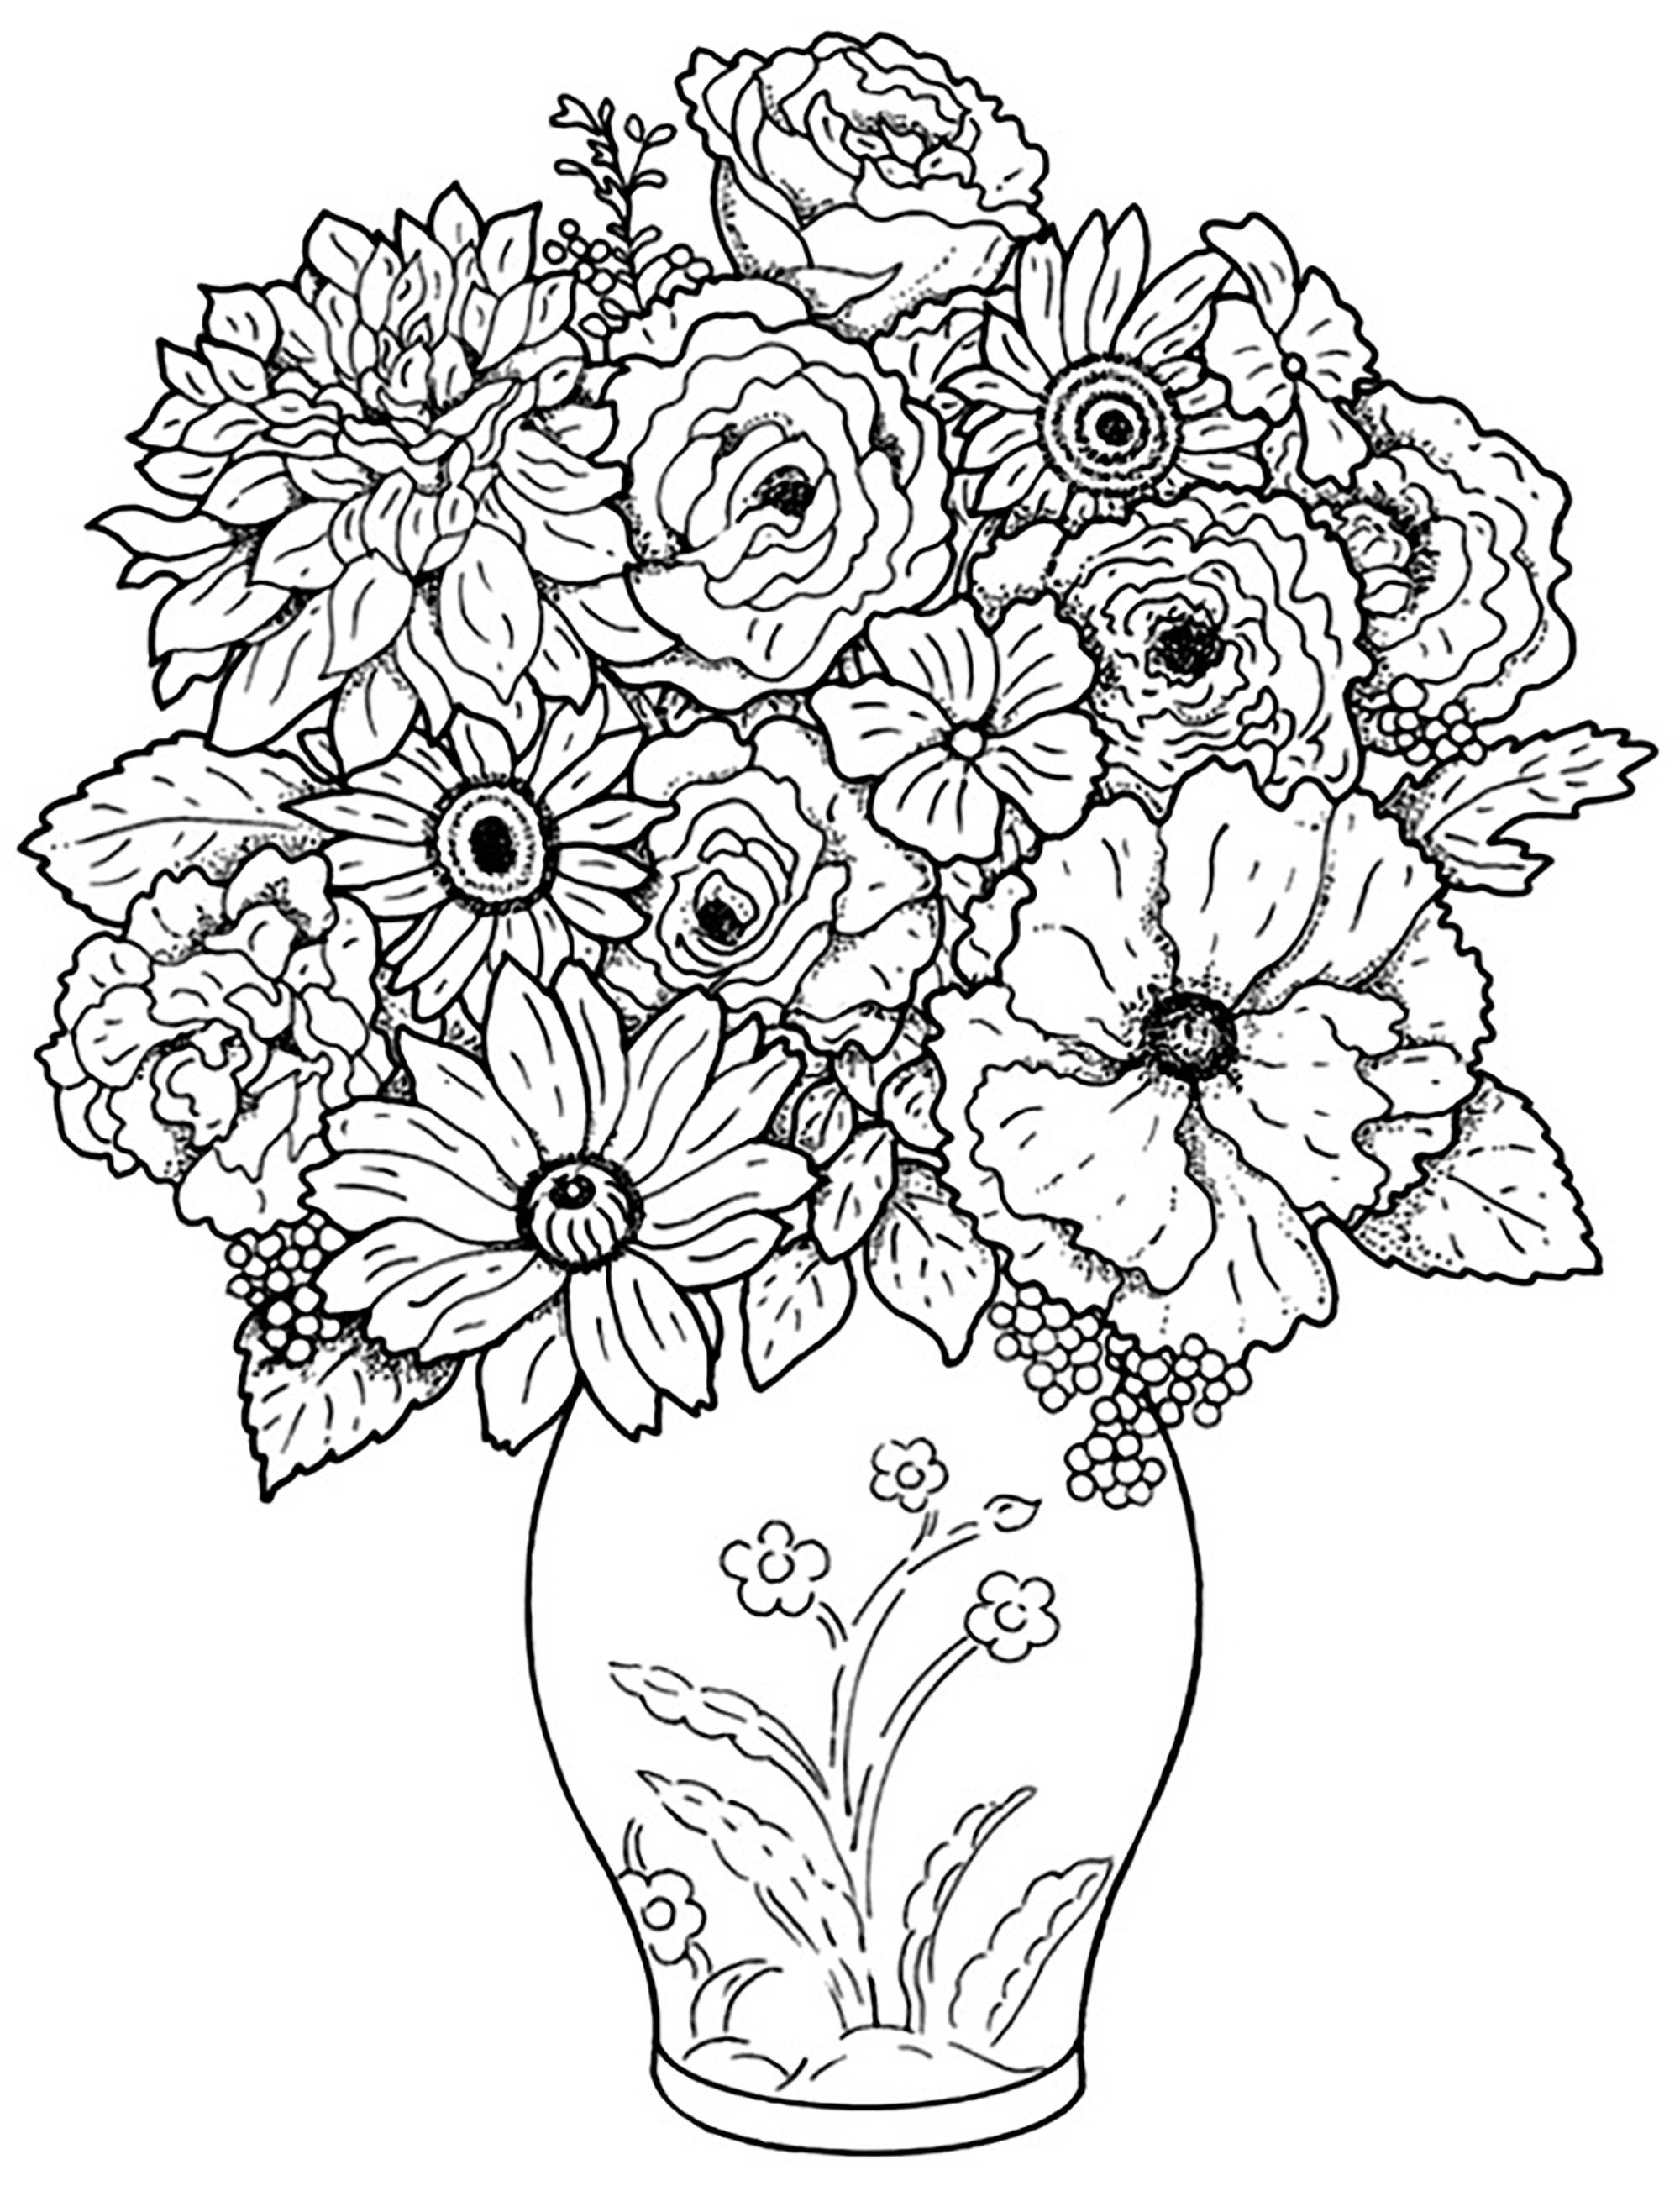 roses coloring spring flowers coloring page 28 customizable printables coloring roses